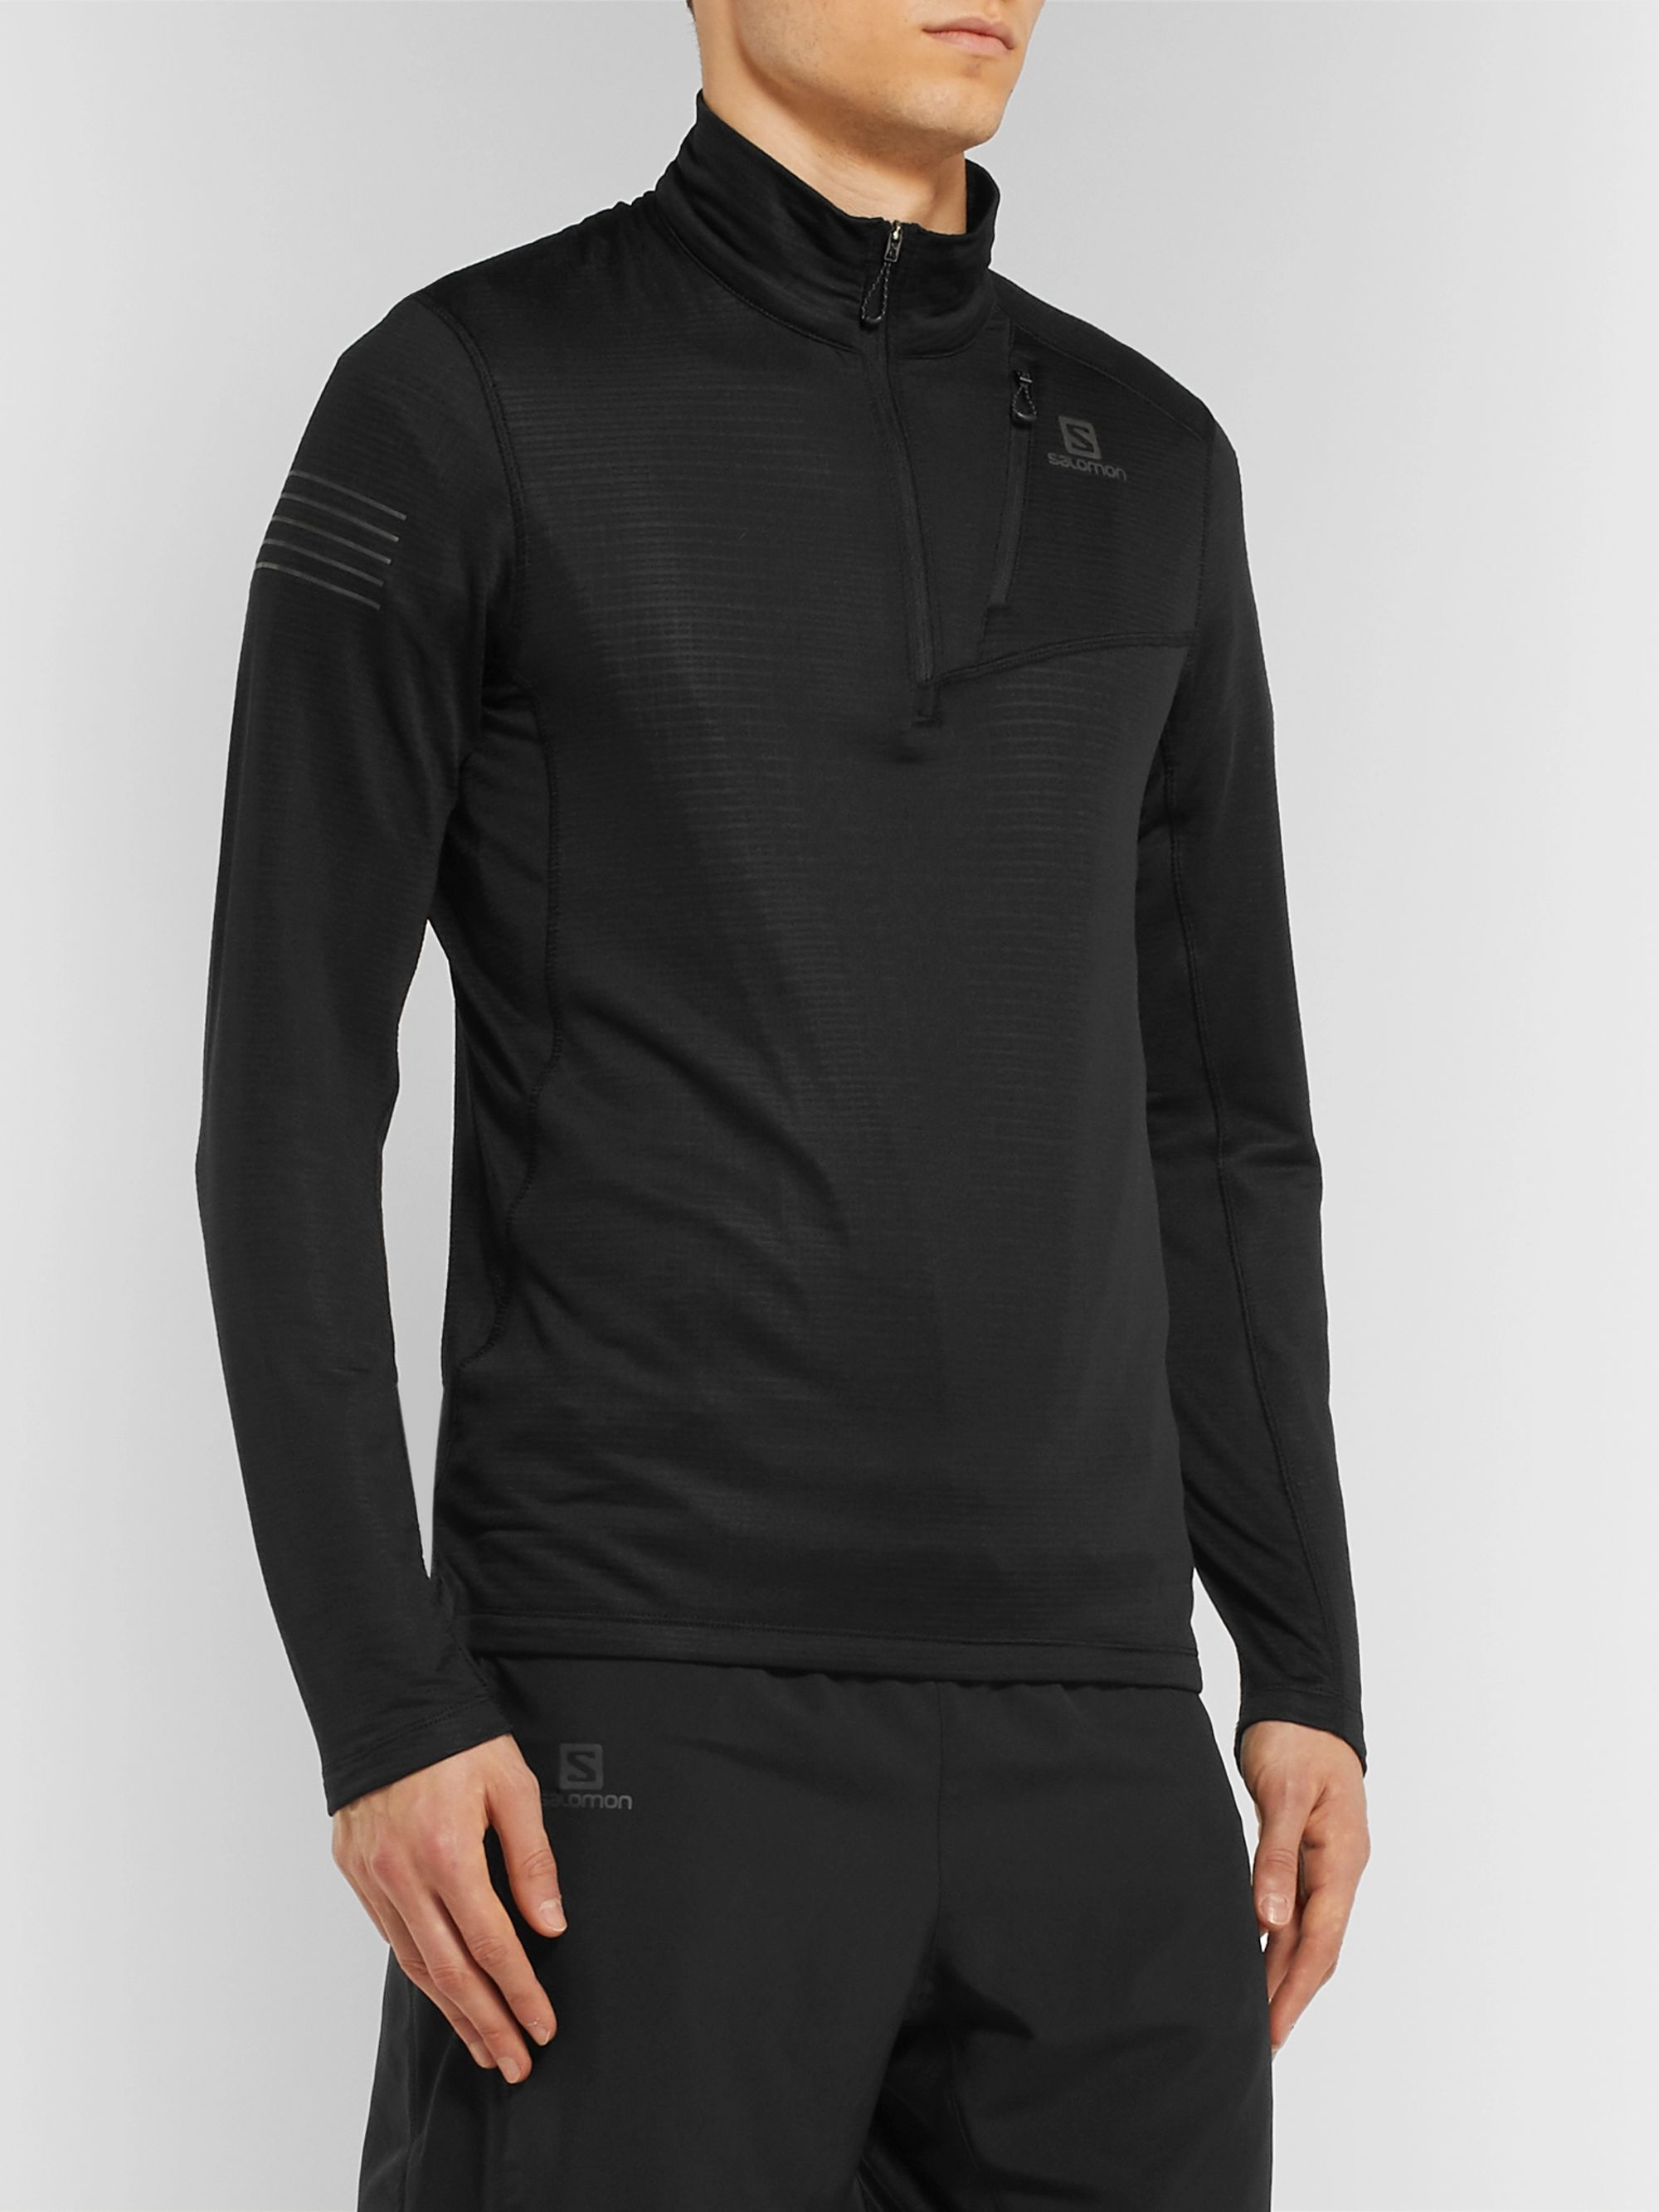 Salomon Grid Half-Zip Running Top